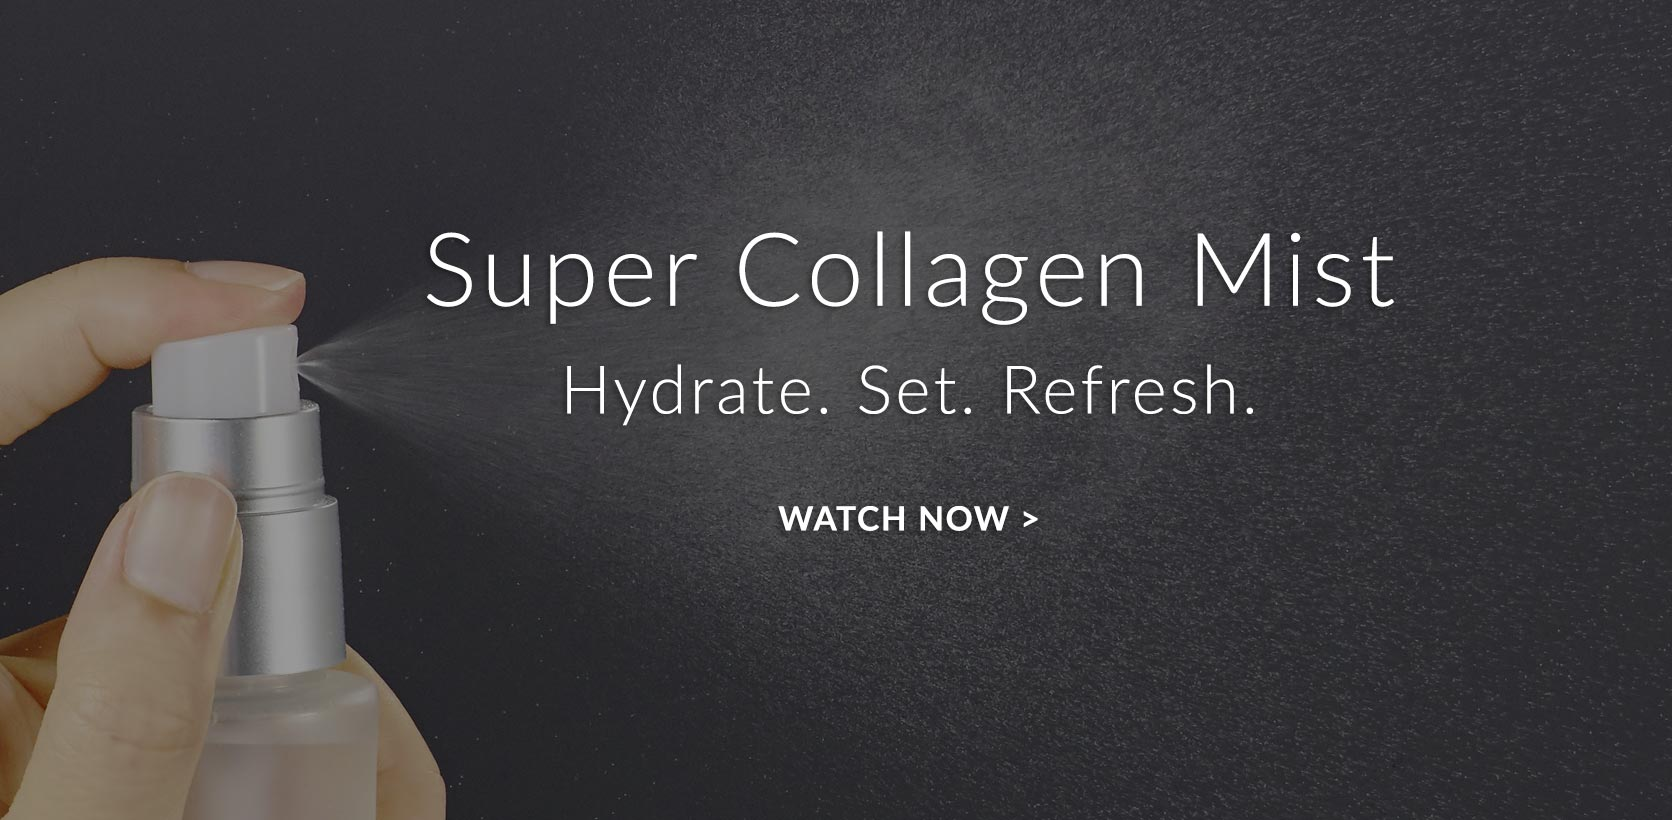 Super Collagen Mist Hydrate. Set. Refresh.